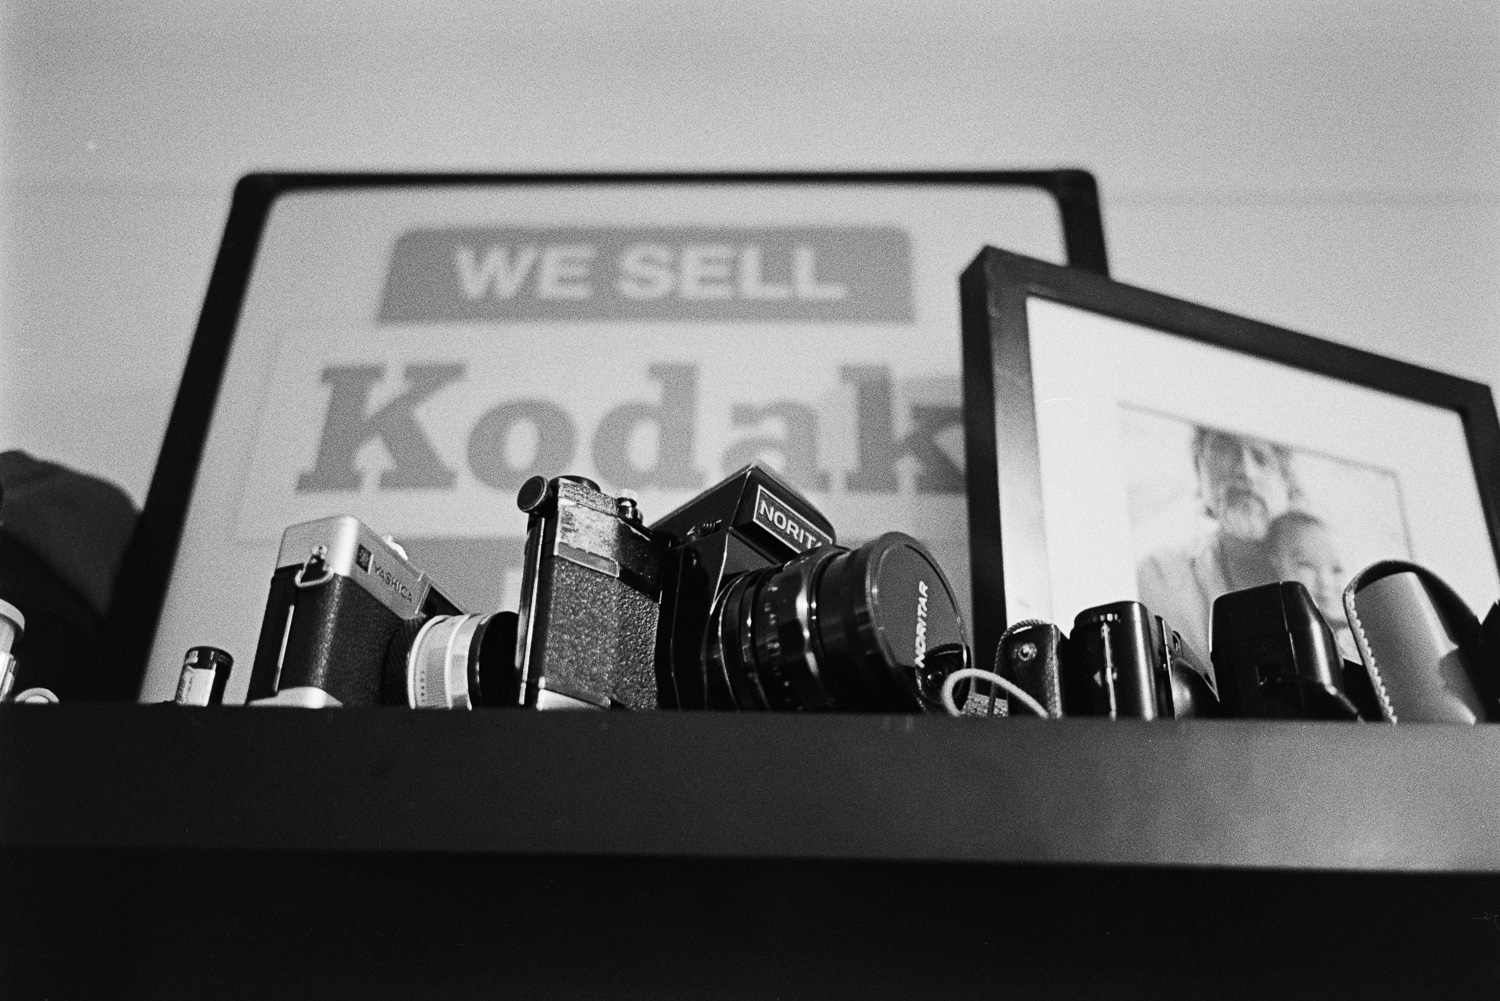 We sell Kodak, and I buy.